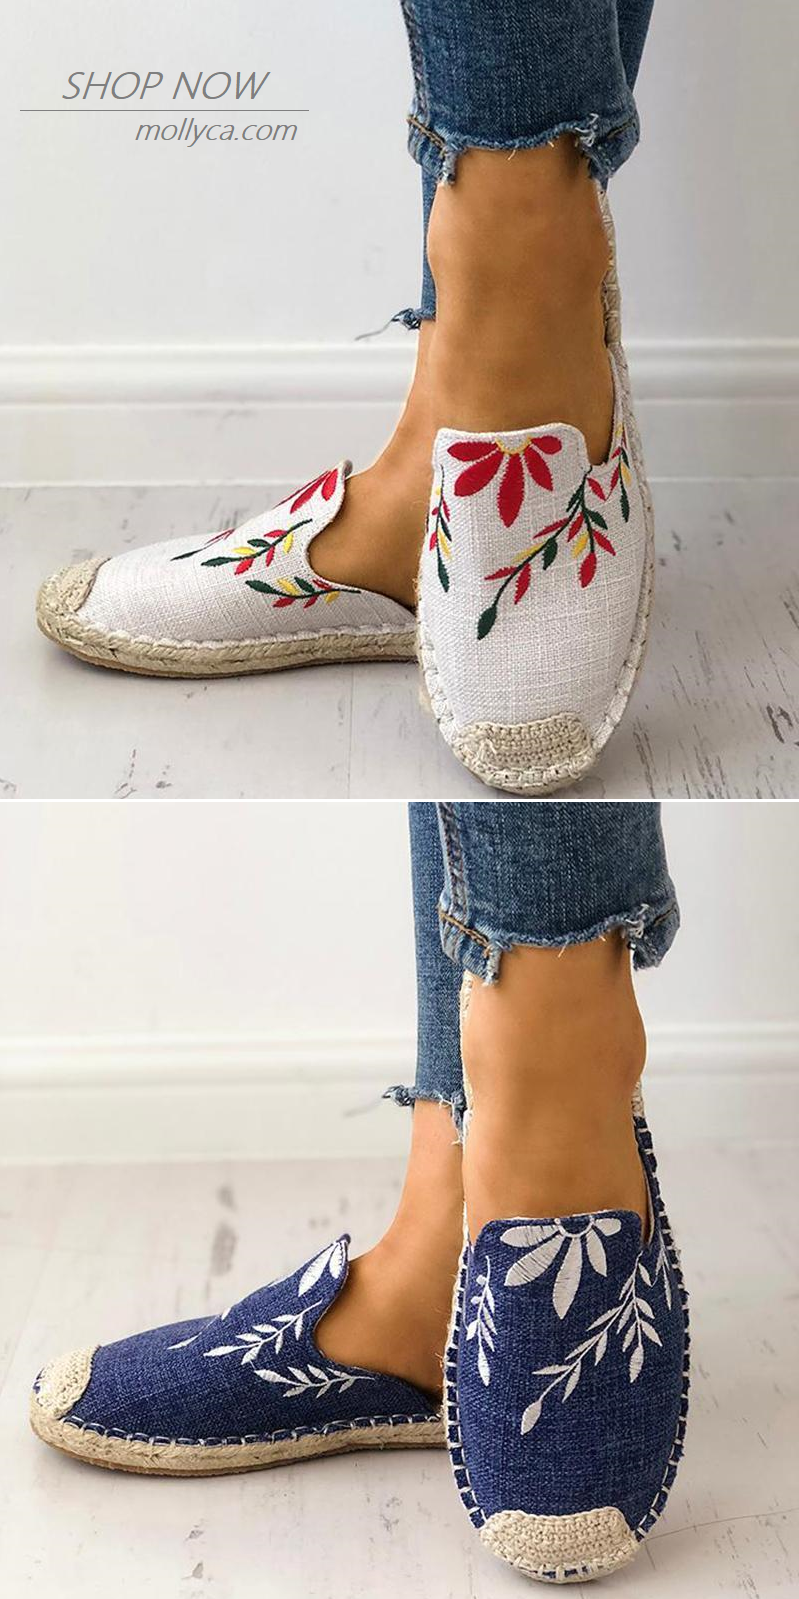 e02296028379  29.99 USD Sale! Free Shipping! Shop Now! Women Fashion Embroidered  Espadrille Flat Slippers Shoes